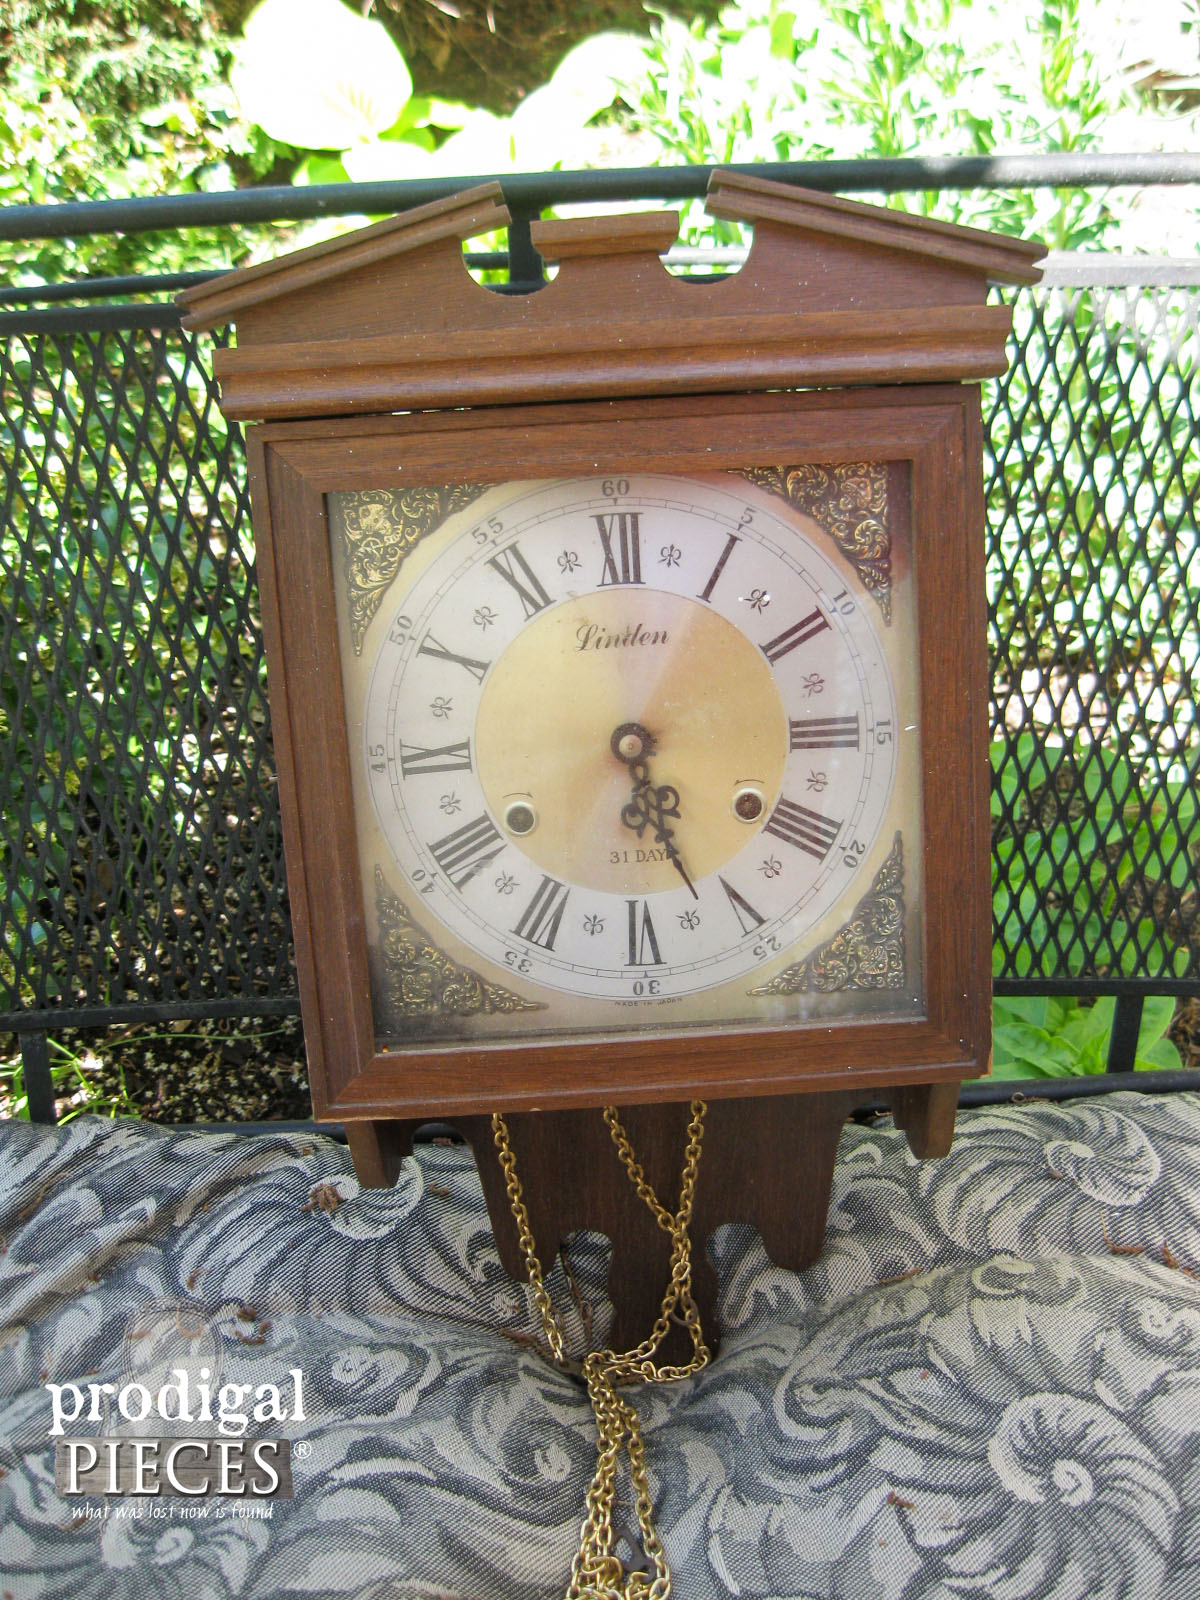 Vintage Clock Found Curbside Before Repurposing | Prodigal Pieces | www.prodigalpieces.com